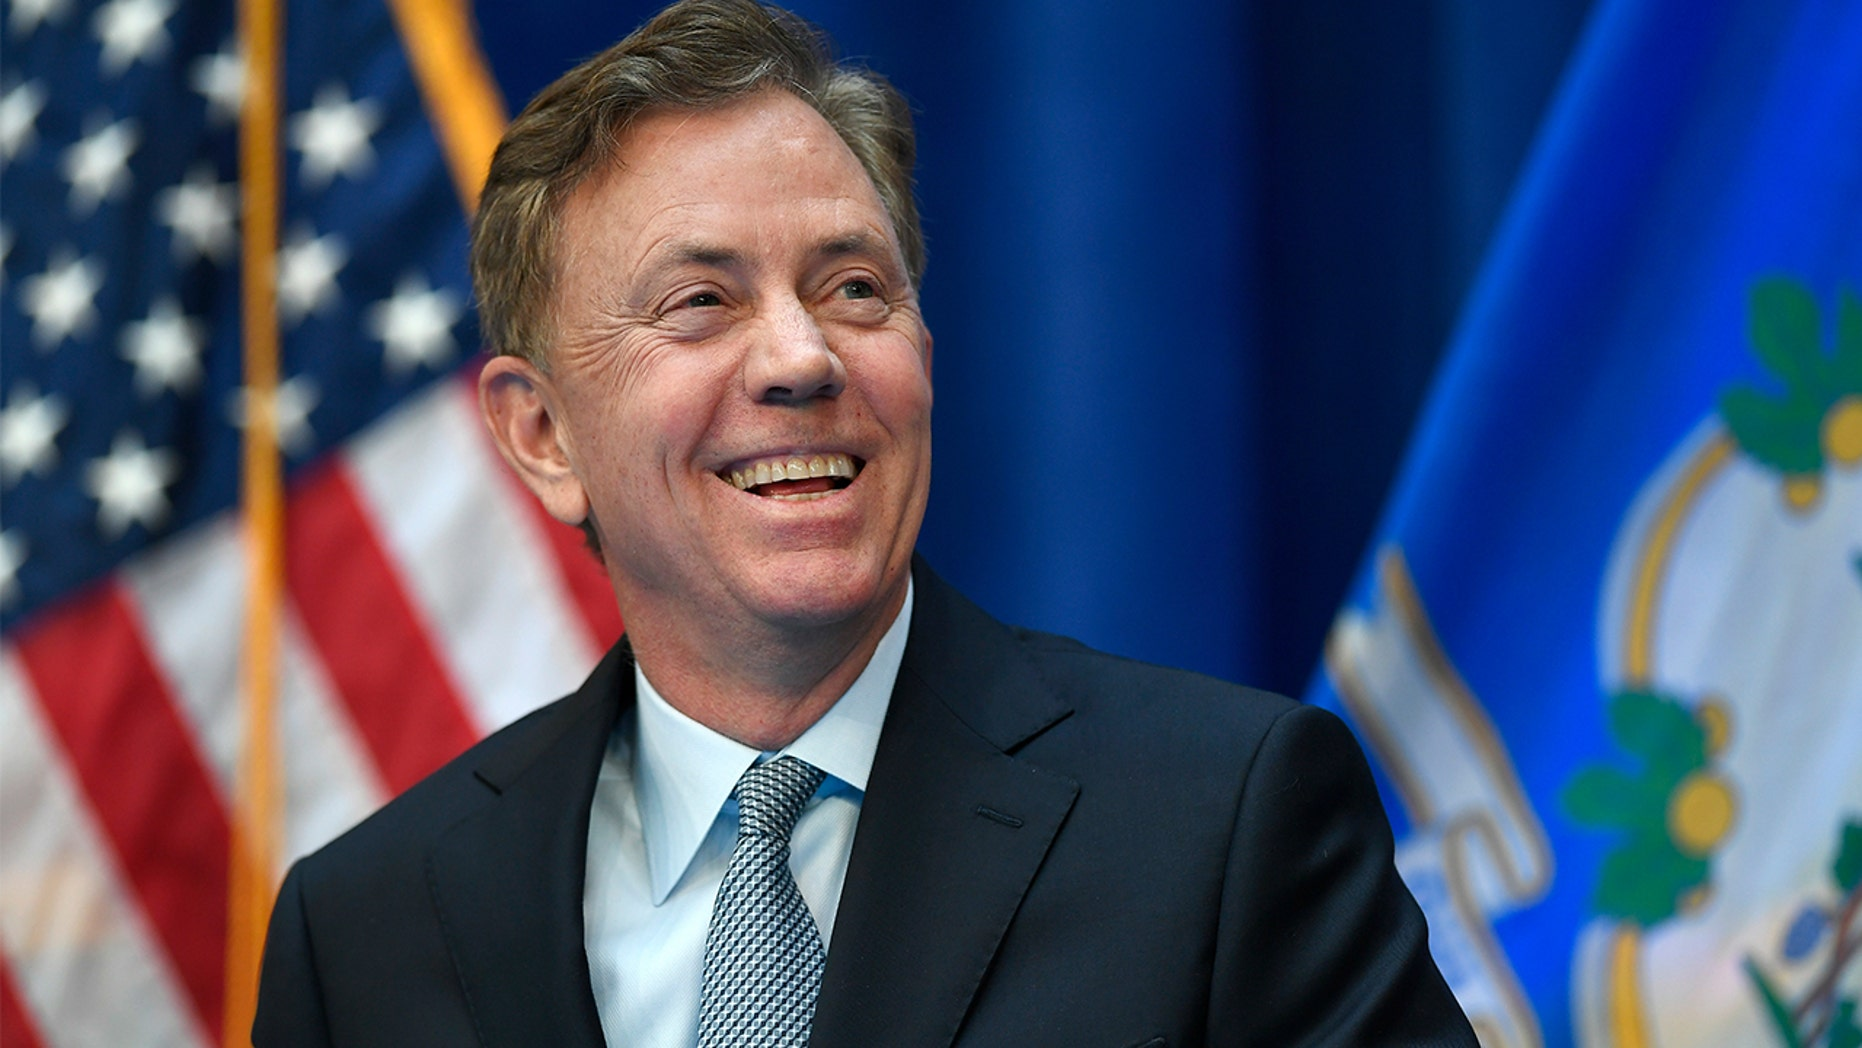 Connecticut Gov. Ned Lamont smiles during his inauguration, Wednesday, Jan. 9, 2019, inside the William A. O'Neill Armory in Hartford Conn. (AP Photo/Jessica Hill, Pool)